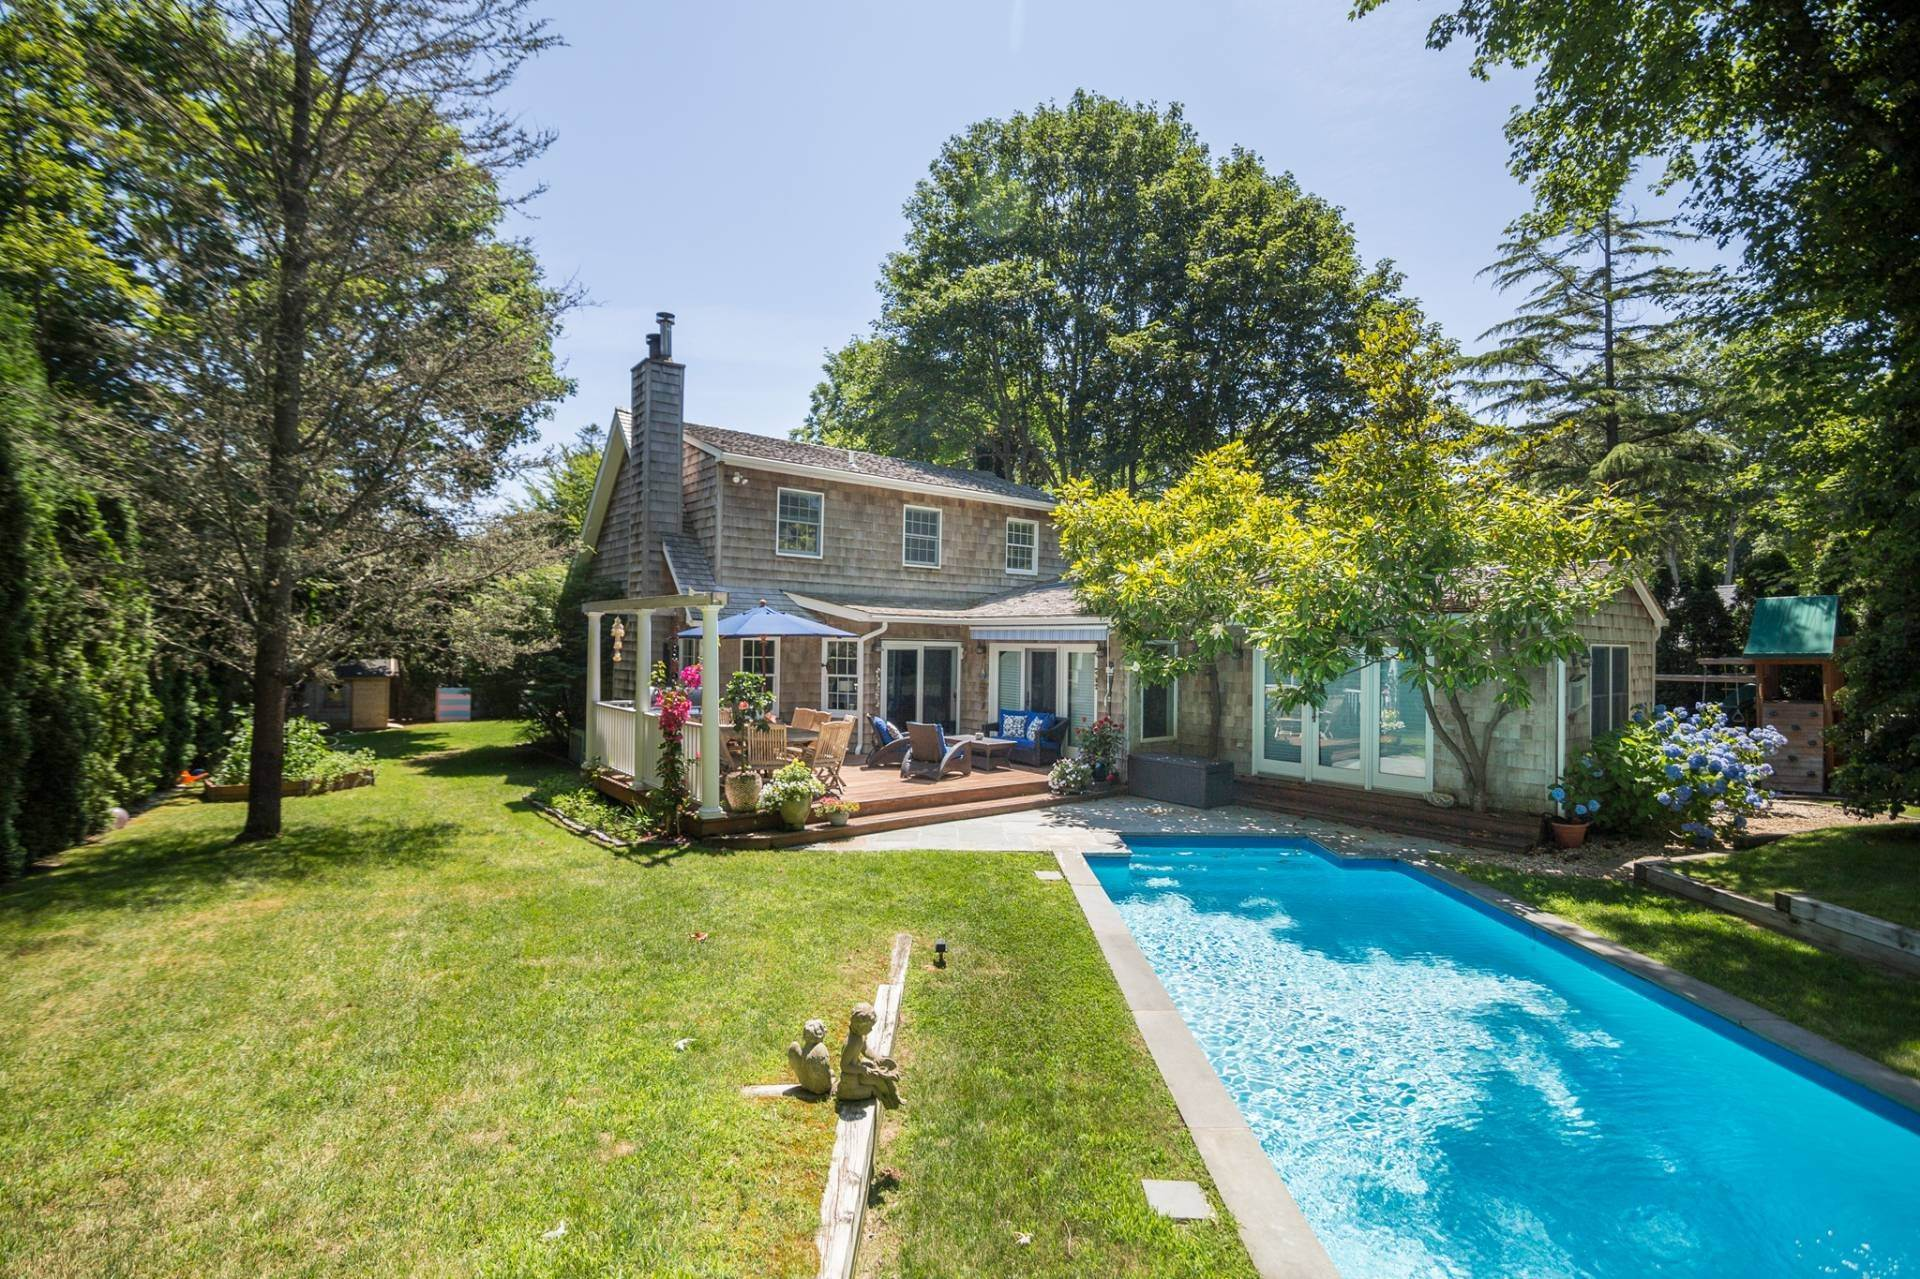 Single Family Home for Sale at Once Upon A Time, In East Hampton Village... 156 Montauk Hwy, East Hampton, NY 11937